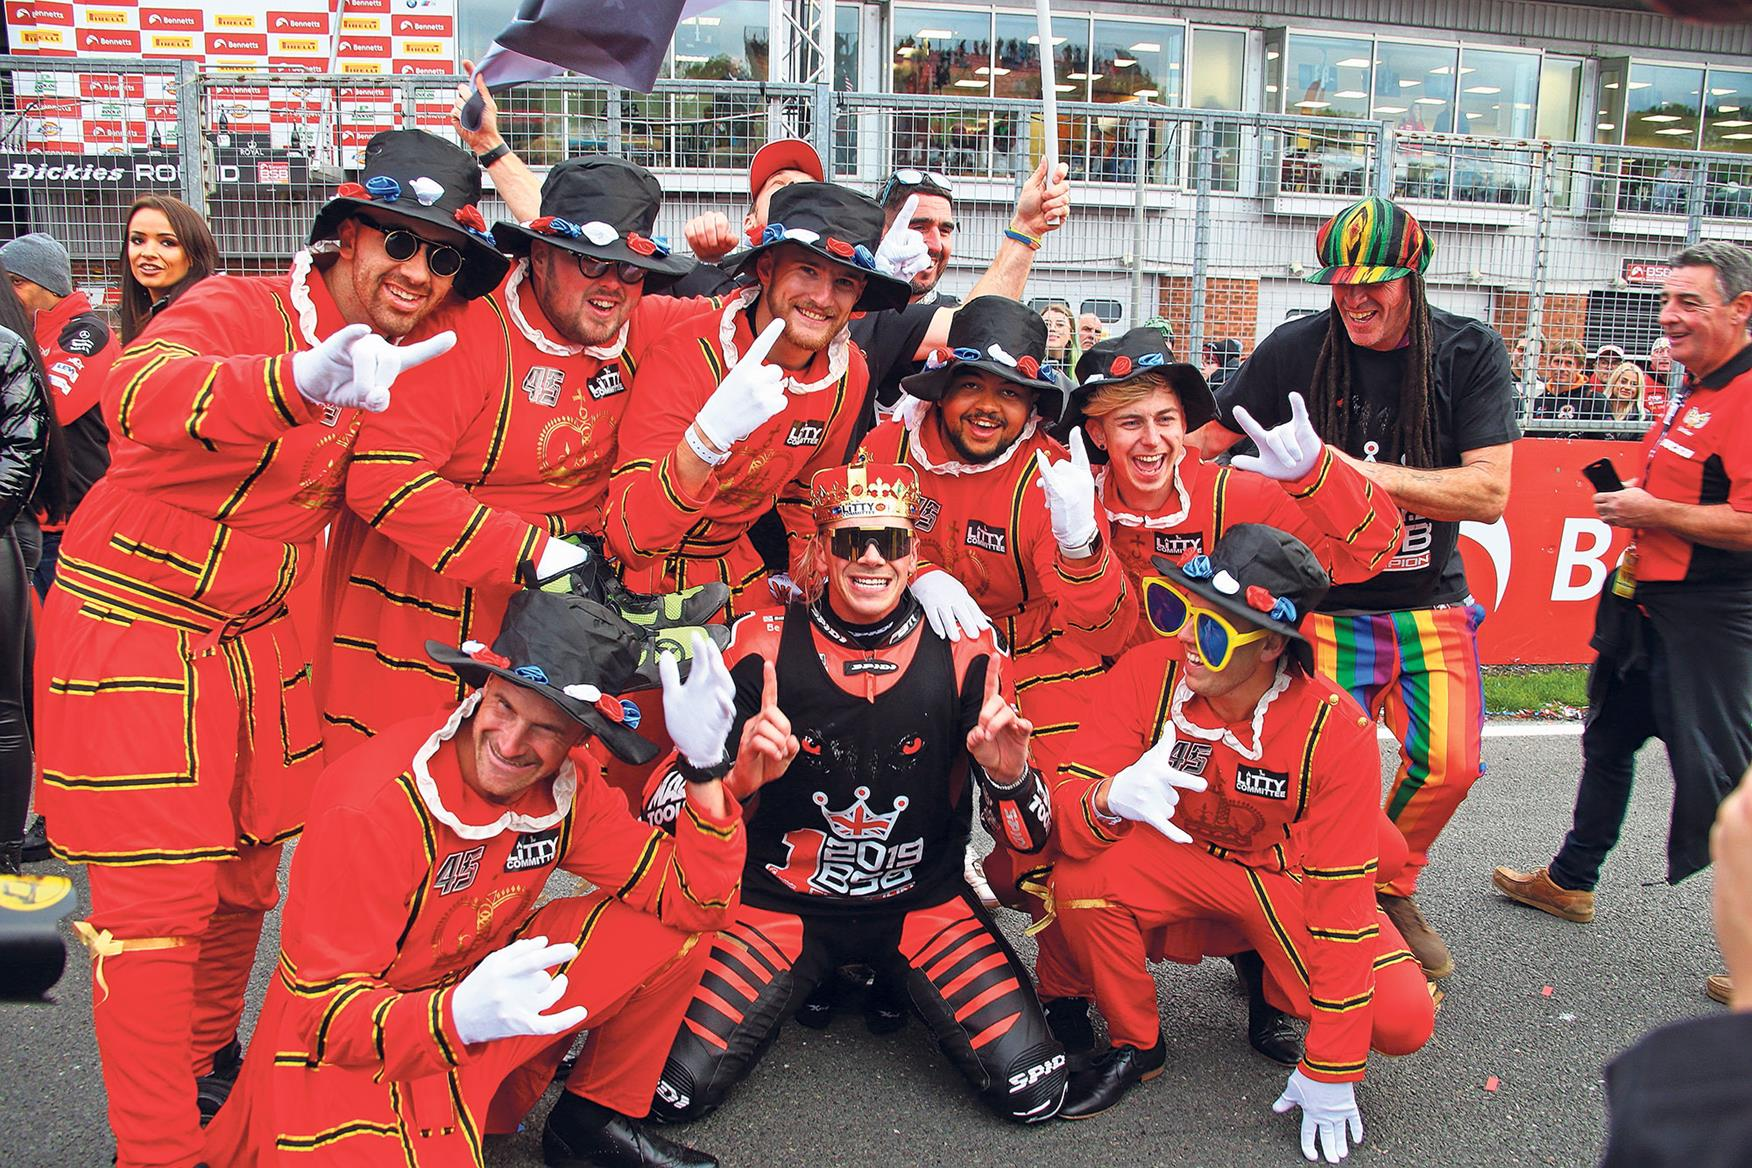 Redding takes the BSB title